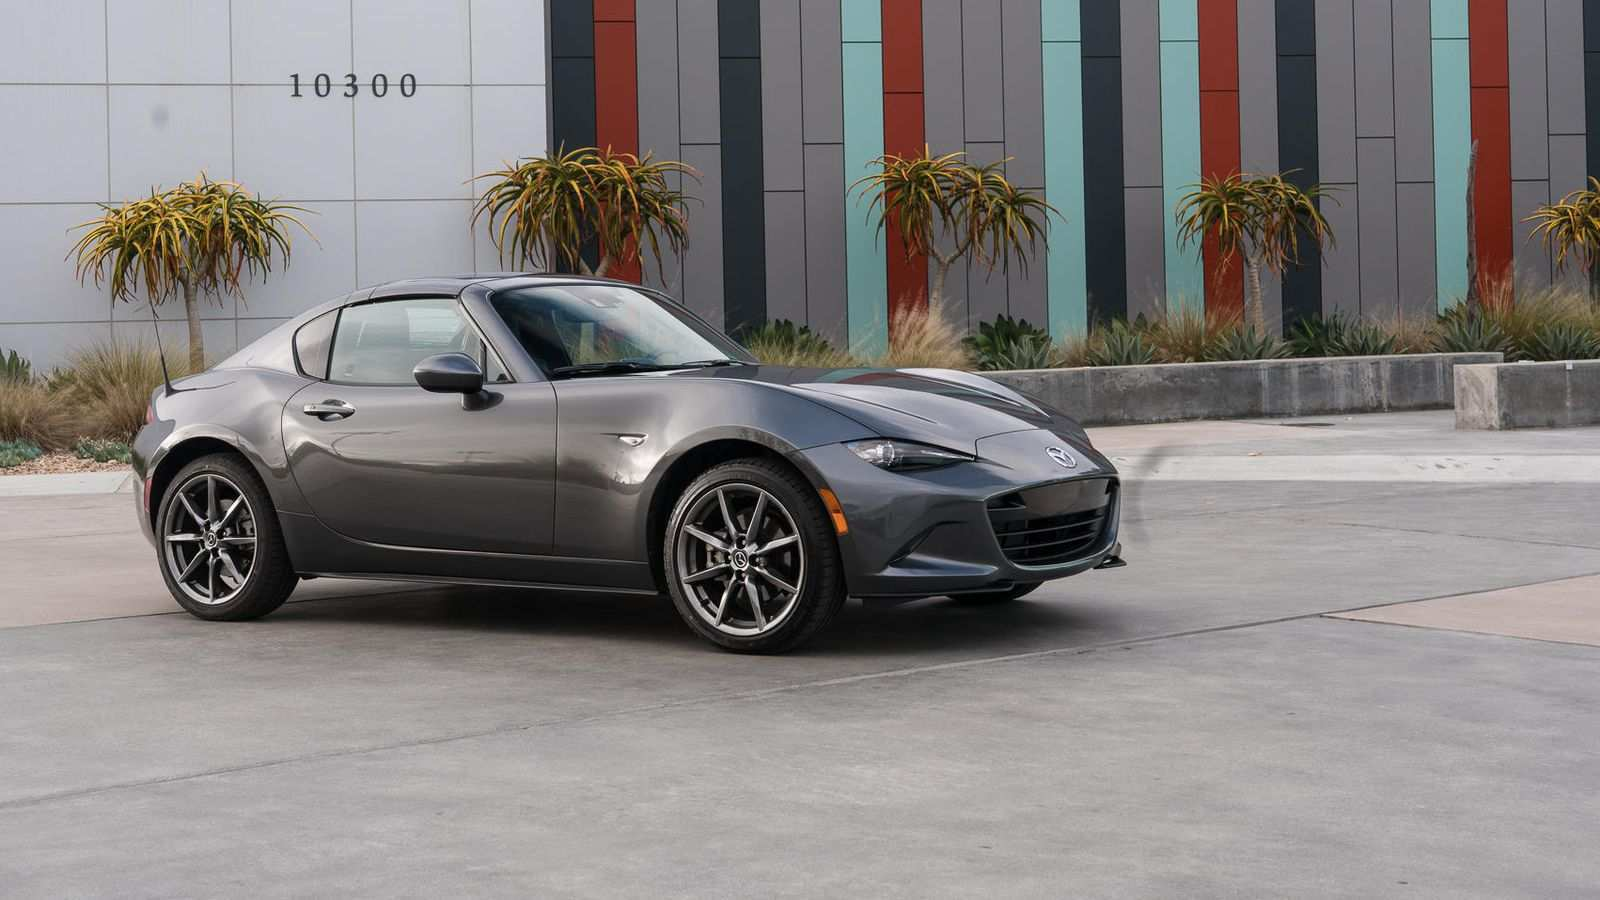 28 All New 2019 Mazda MX 5 Miata Review And Release Date